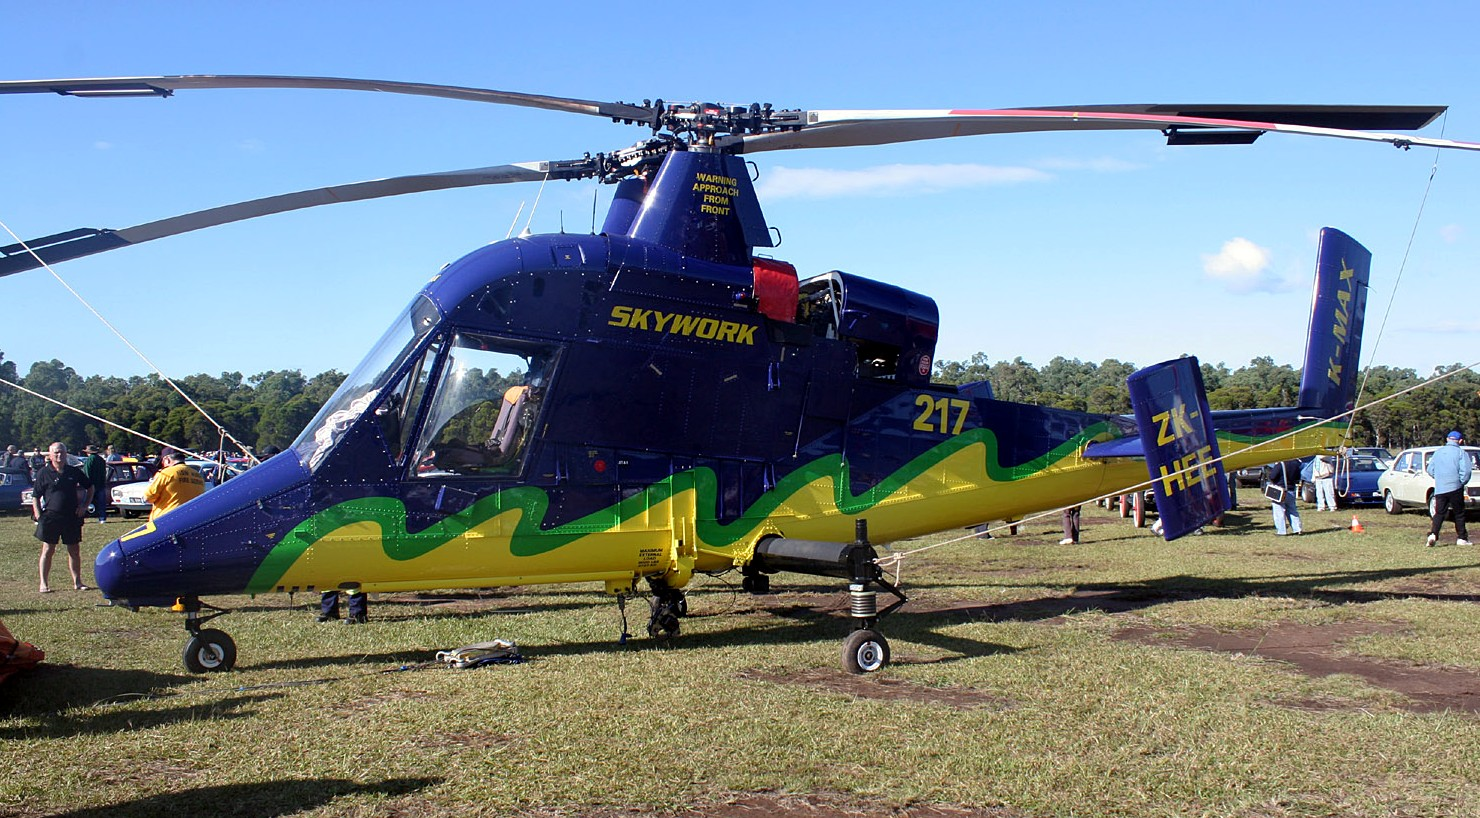 skywork helicopters with A Few Strays on Recent Fling Wings At Christchurch 2 as well Ms Blast And Paint also Tortoli Arbatax Airport Ttb Liet further Recent Fling Wings At Christchurch 2 furthermore Grafton.